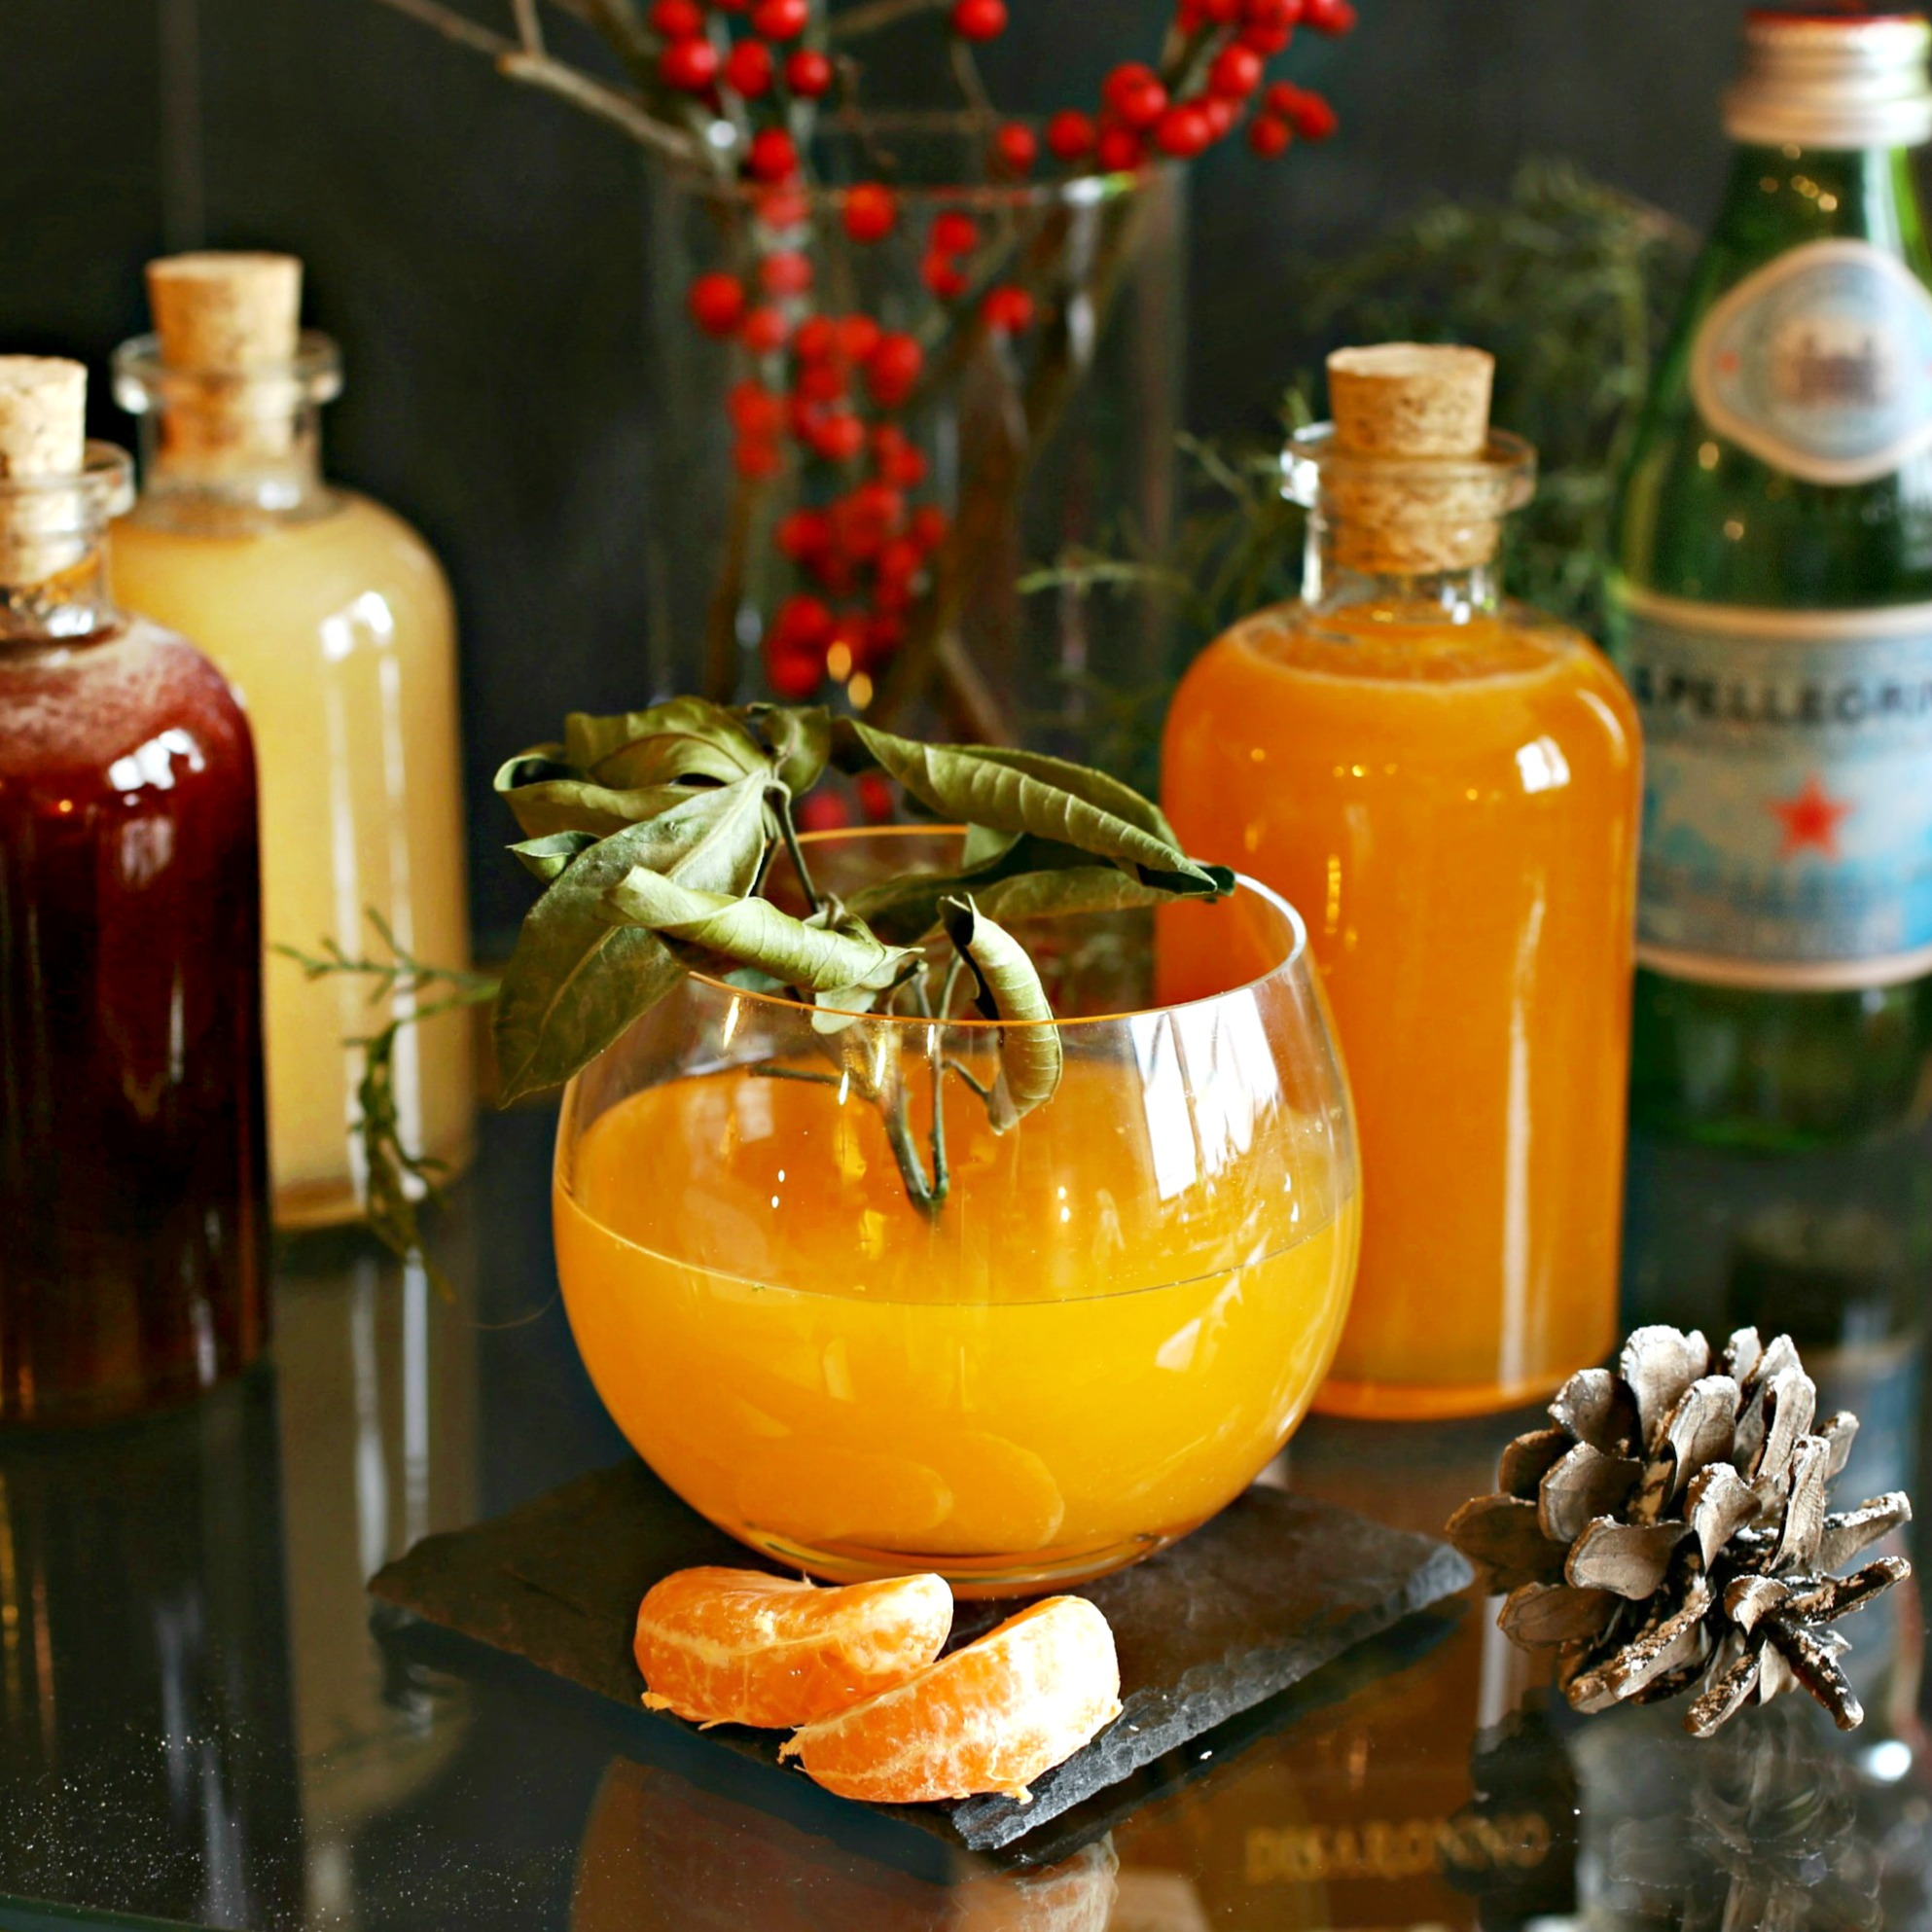 Recipe for a gin cocktail flavored with a mandarin orange shrub.